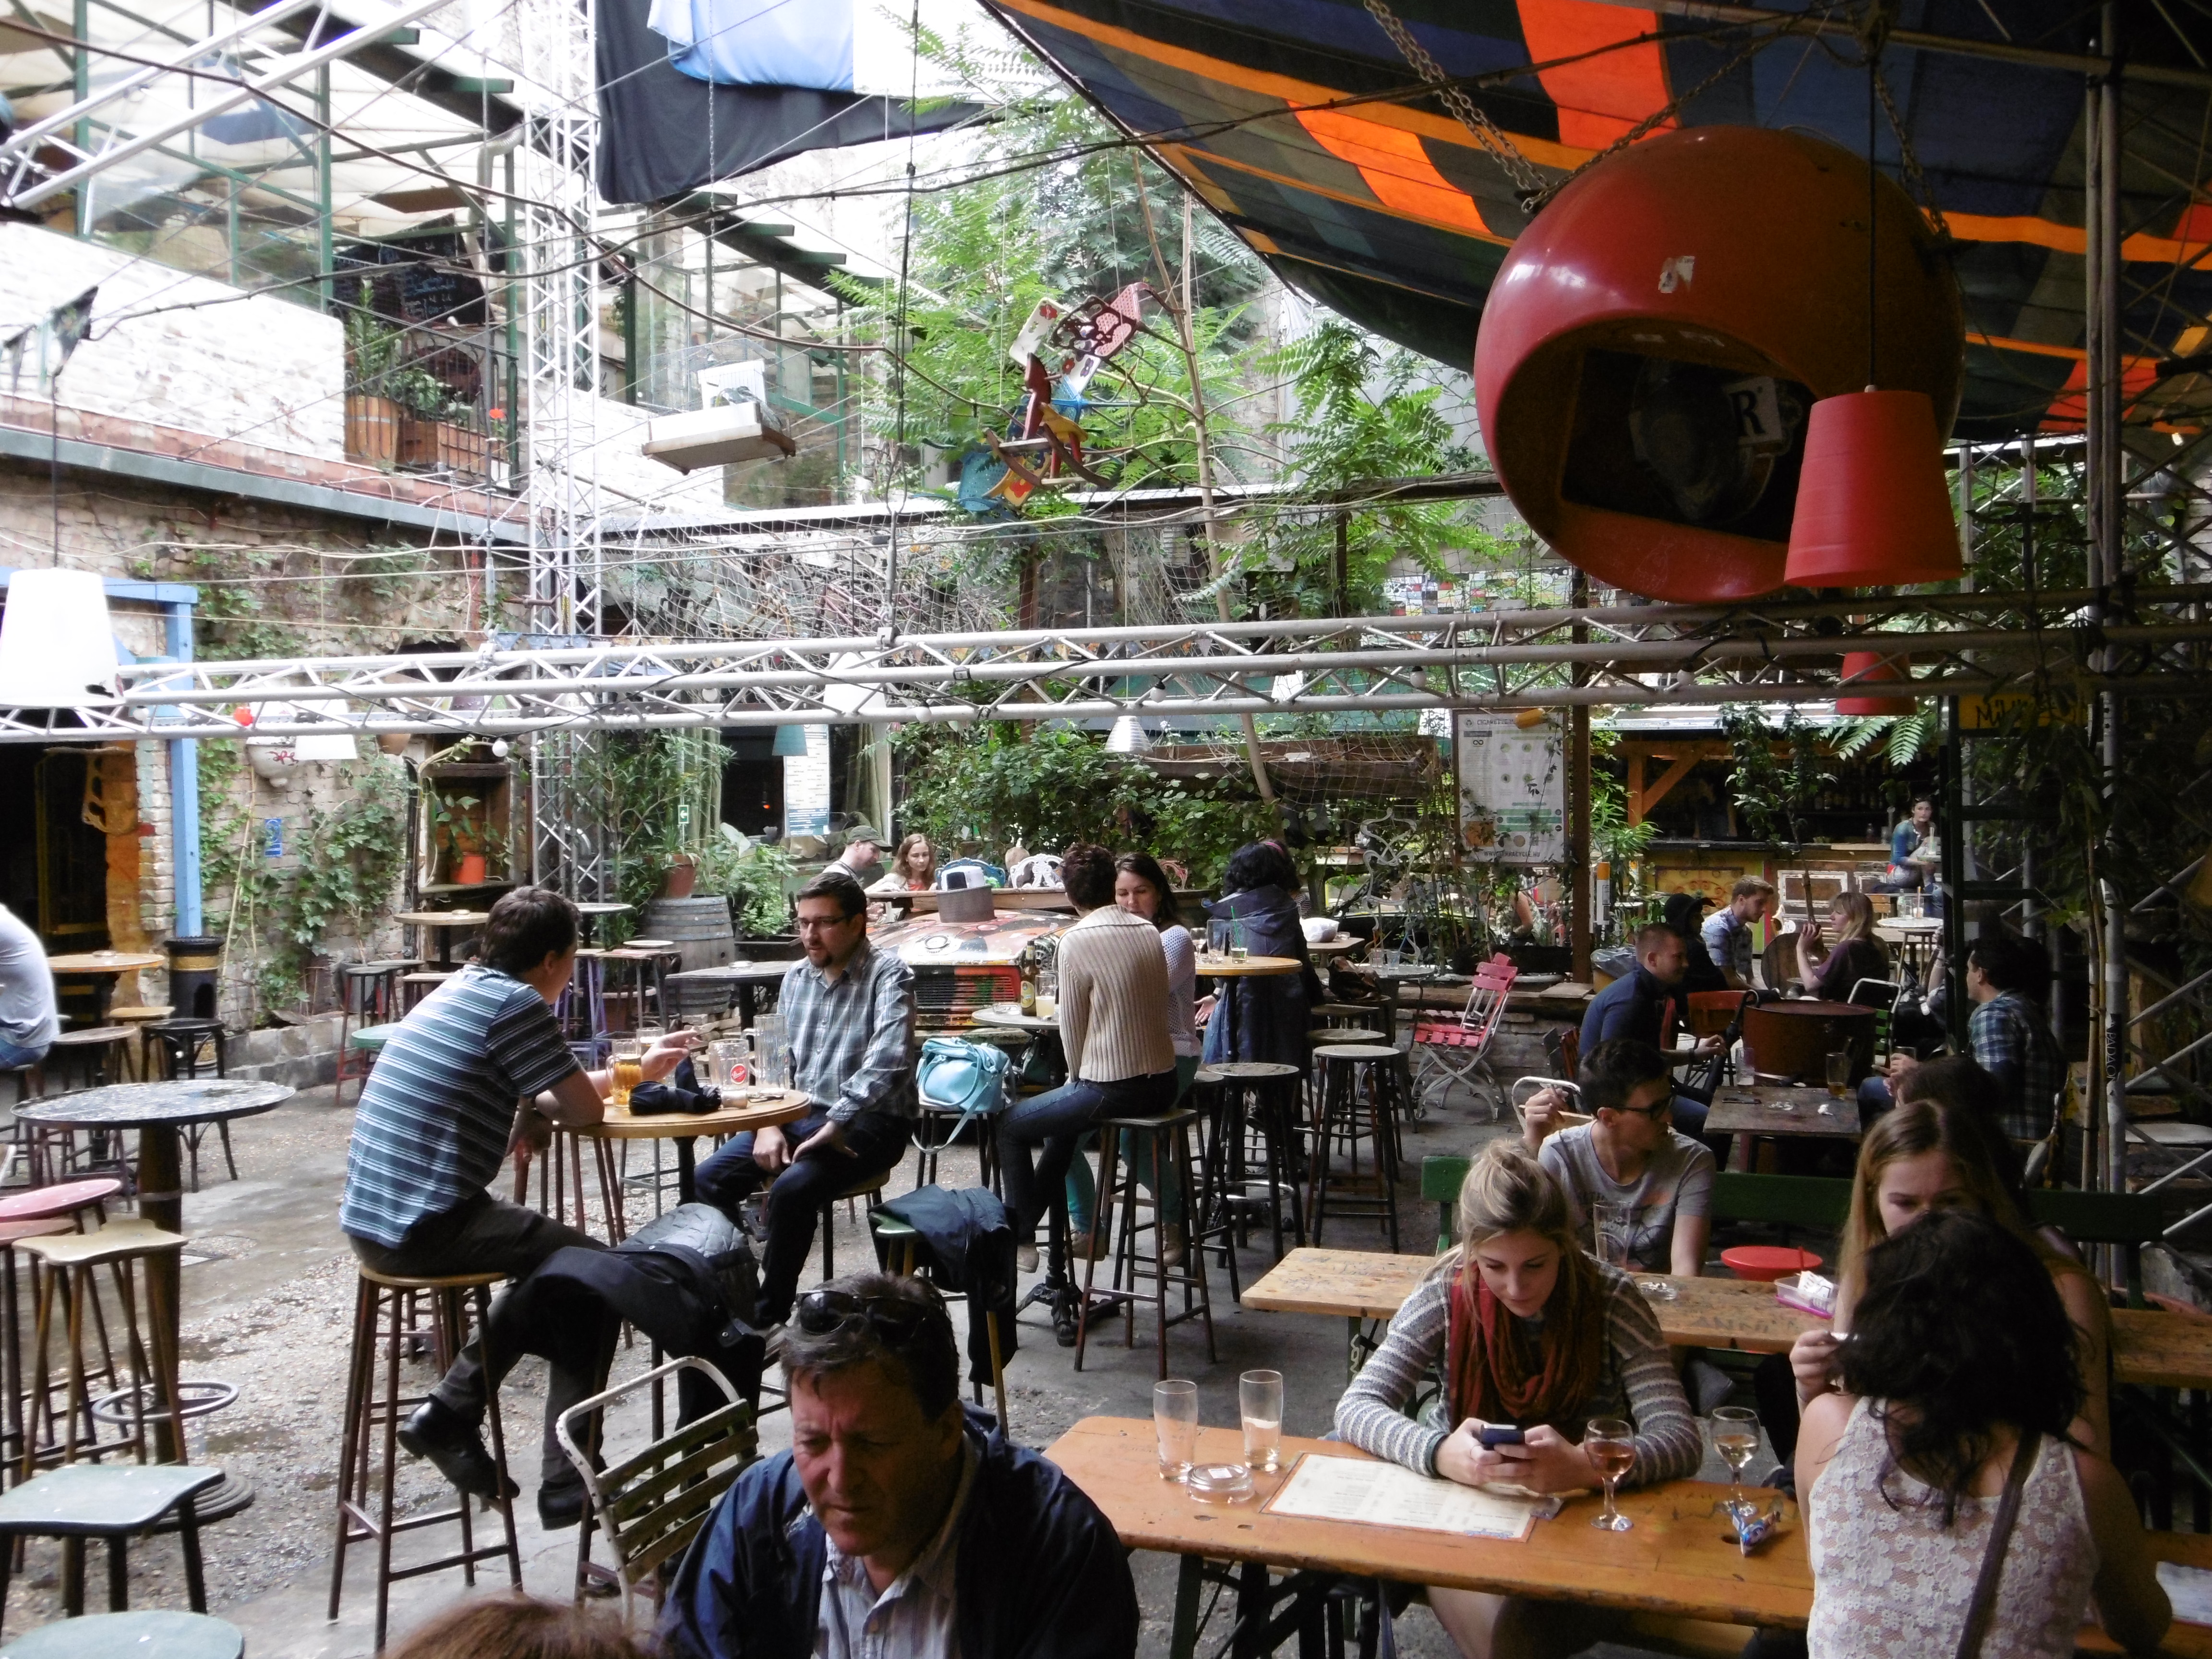 Szimpla kert bar populaire et branch de budapest my for Restaurant atypique